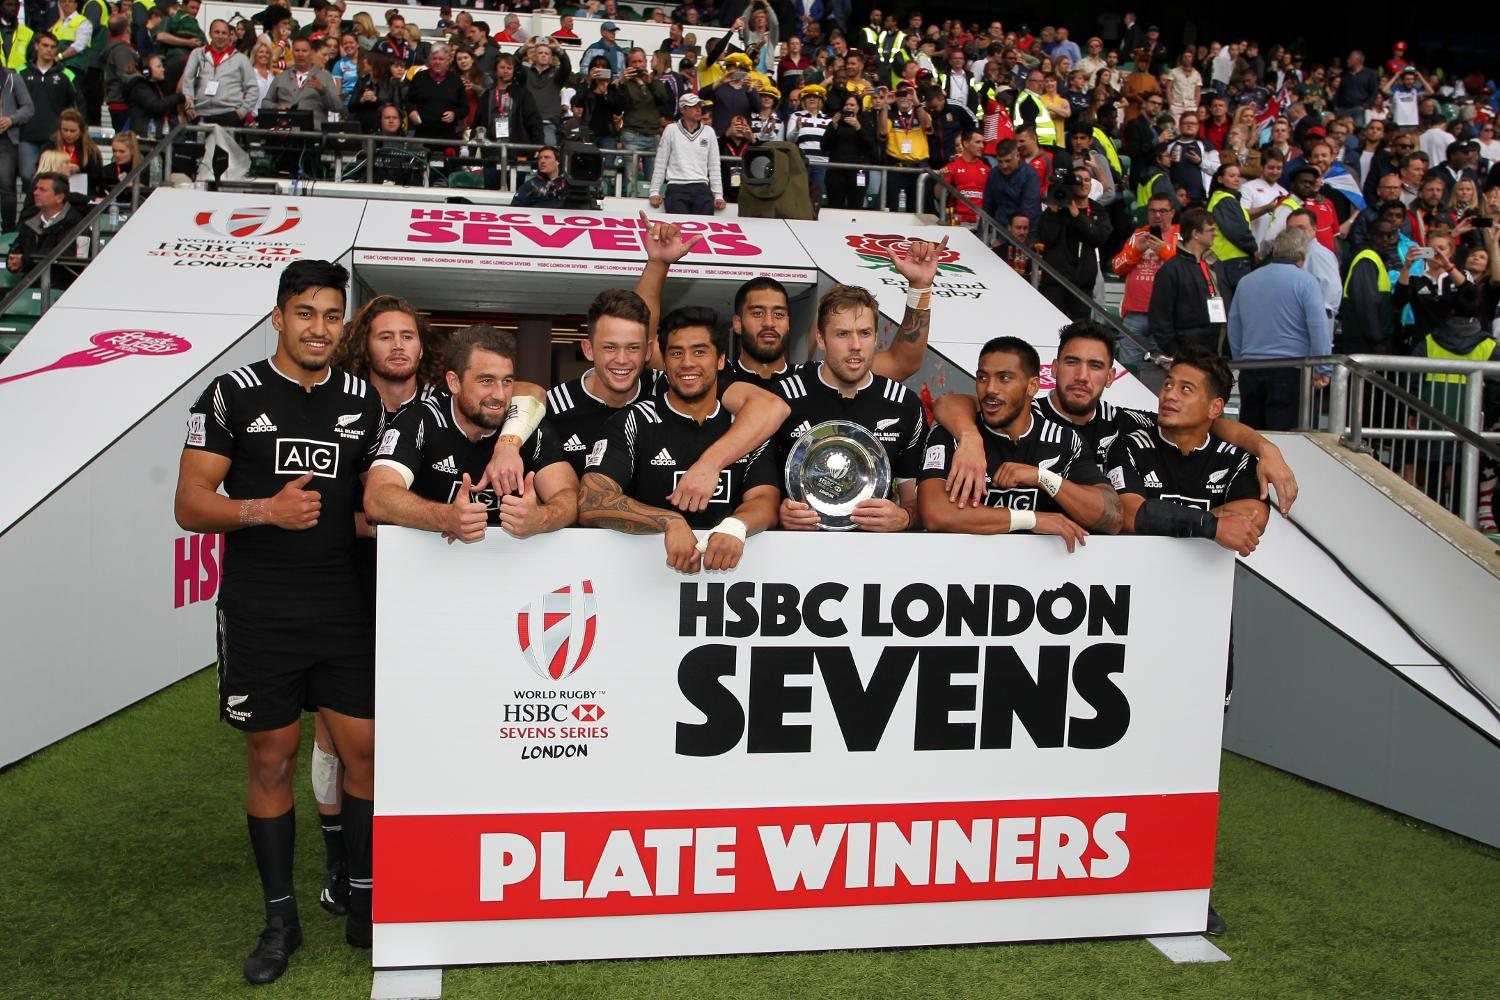 New Zealand win the Plate at the HSBC London Sevens